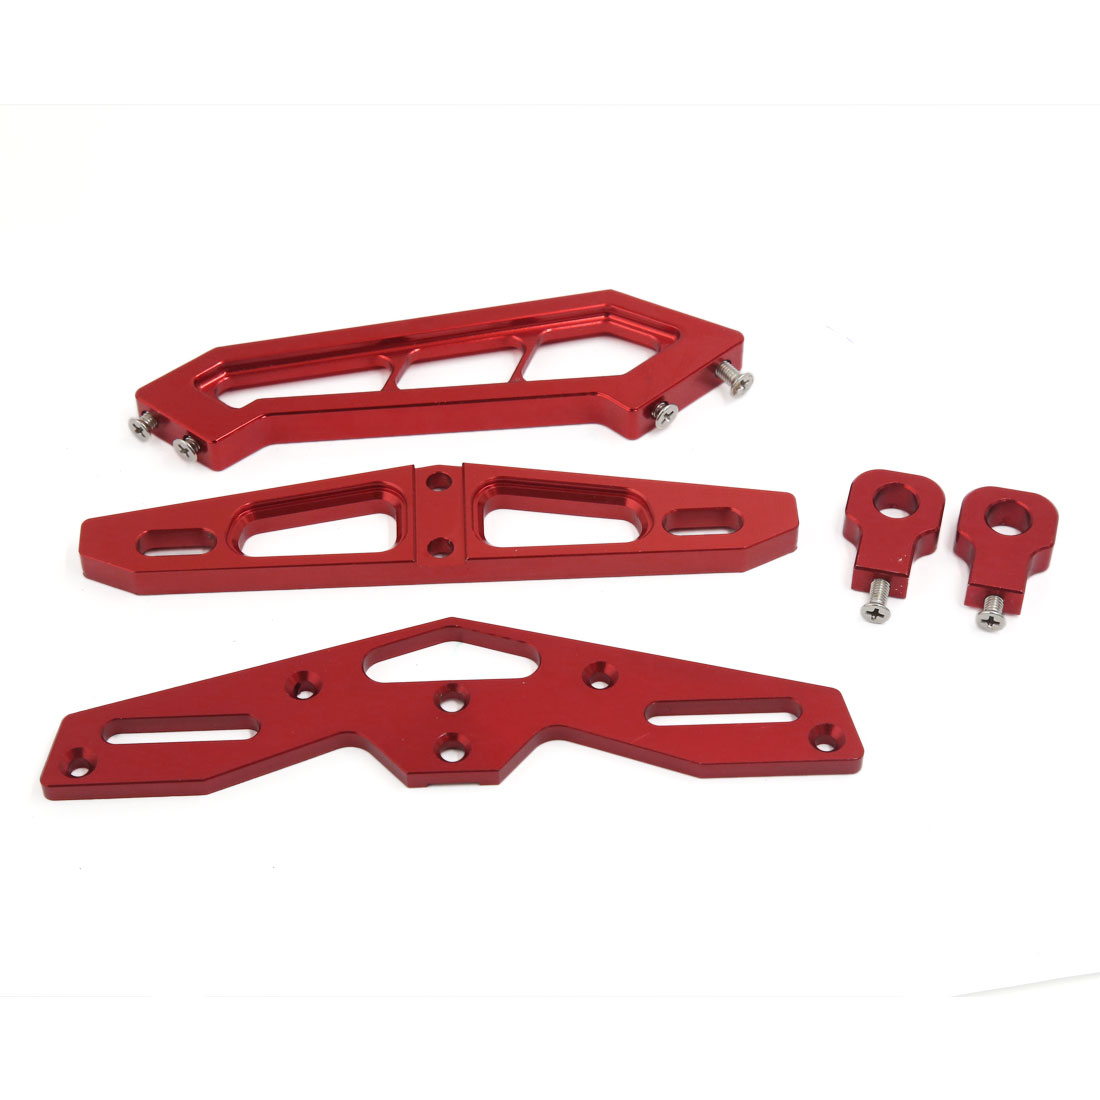 Red CNC Aluminum Alloy Racing Motorcycle Tail License Plate Frame Support Bracket